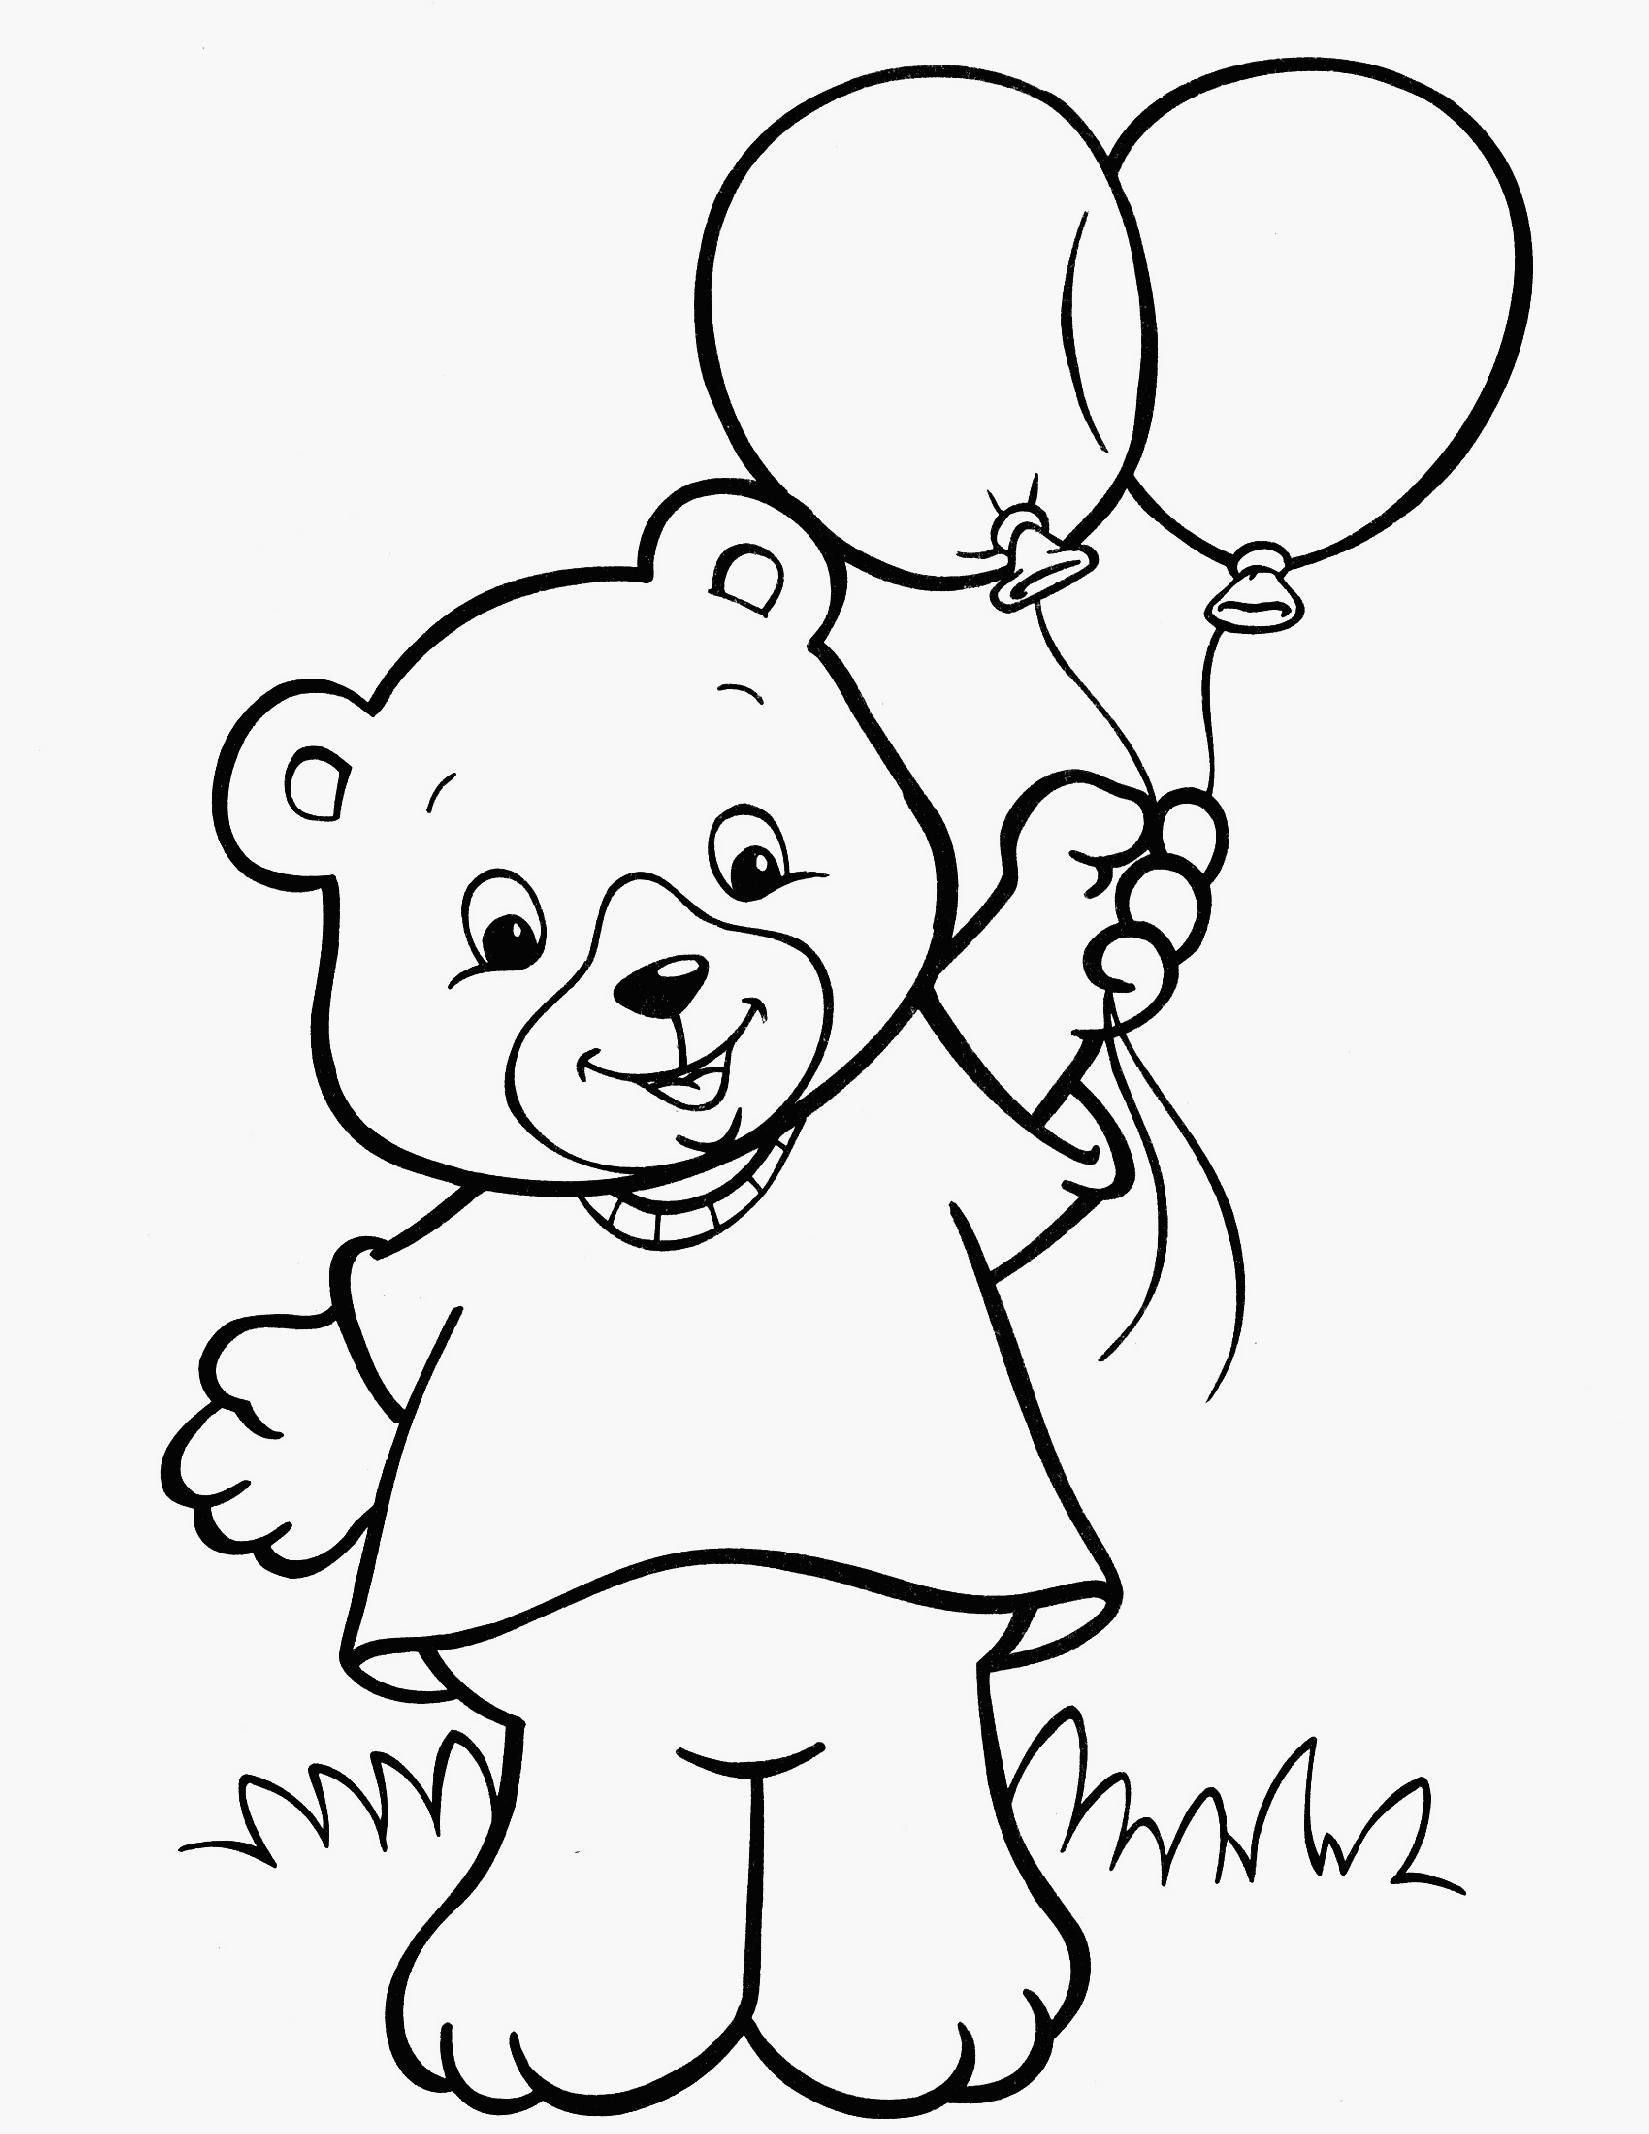 coloring pages for 3 year olds Fresh Coloring Pages For 3 Year Olds 92 With Additional Free In  coloring pages for 3 year olds